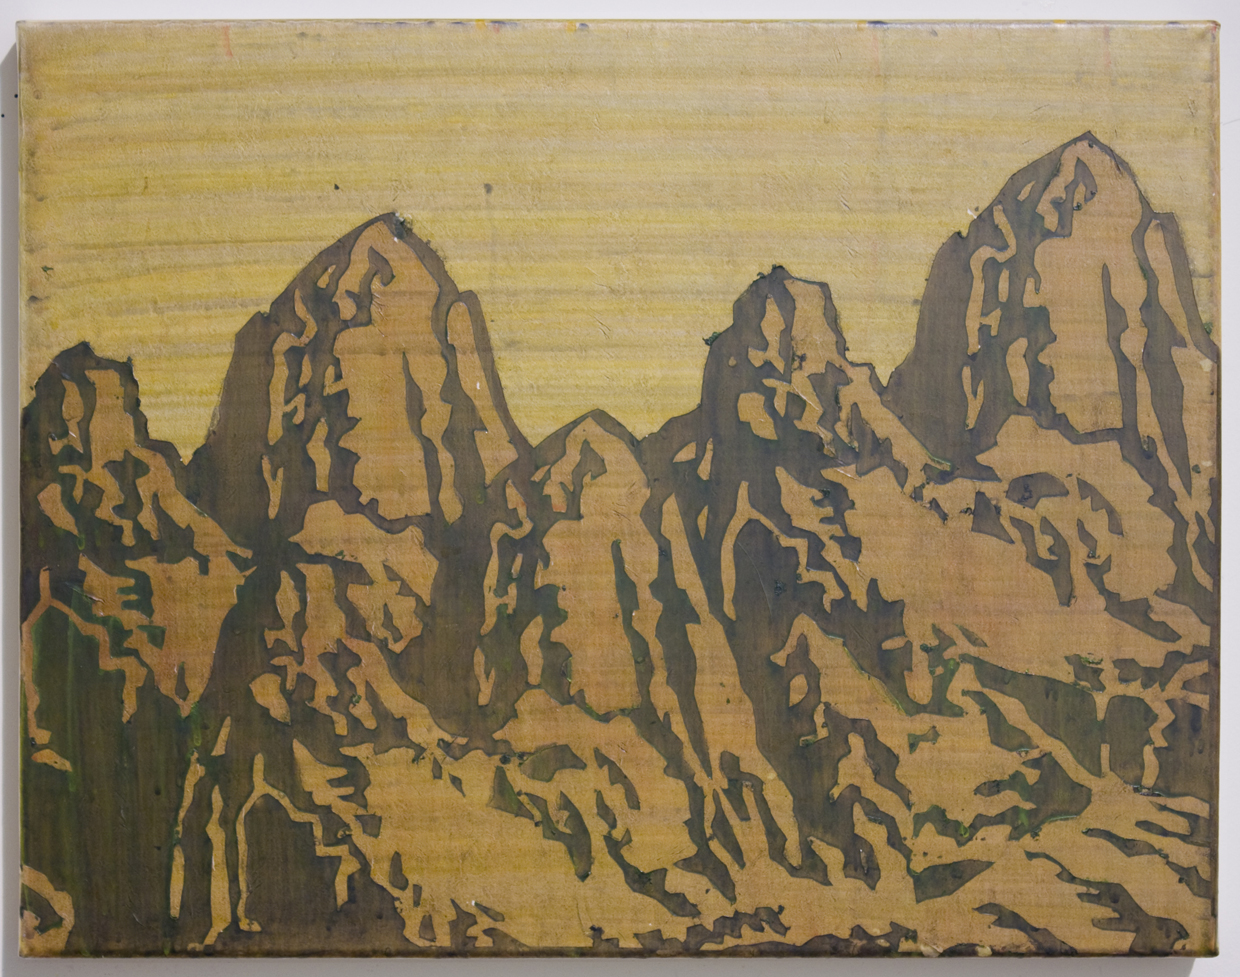 "Jang Soon Im, Landscape study (3 Patagonias), 2015, Pigment and hide glue on mulberry paper, 18"" x 14"""